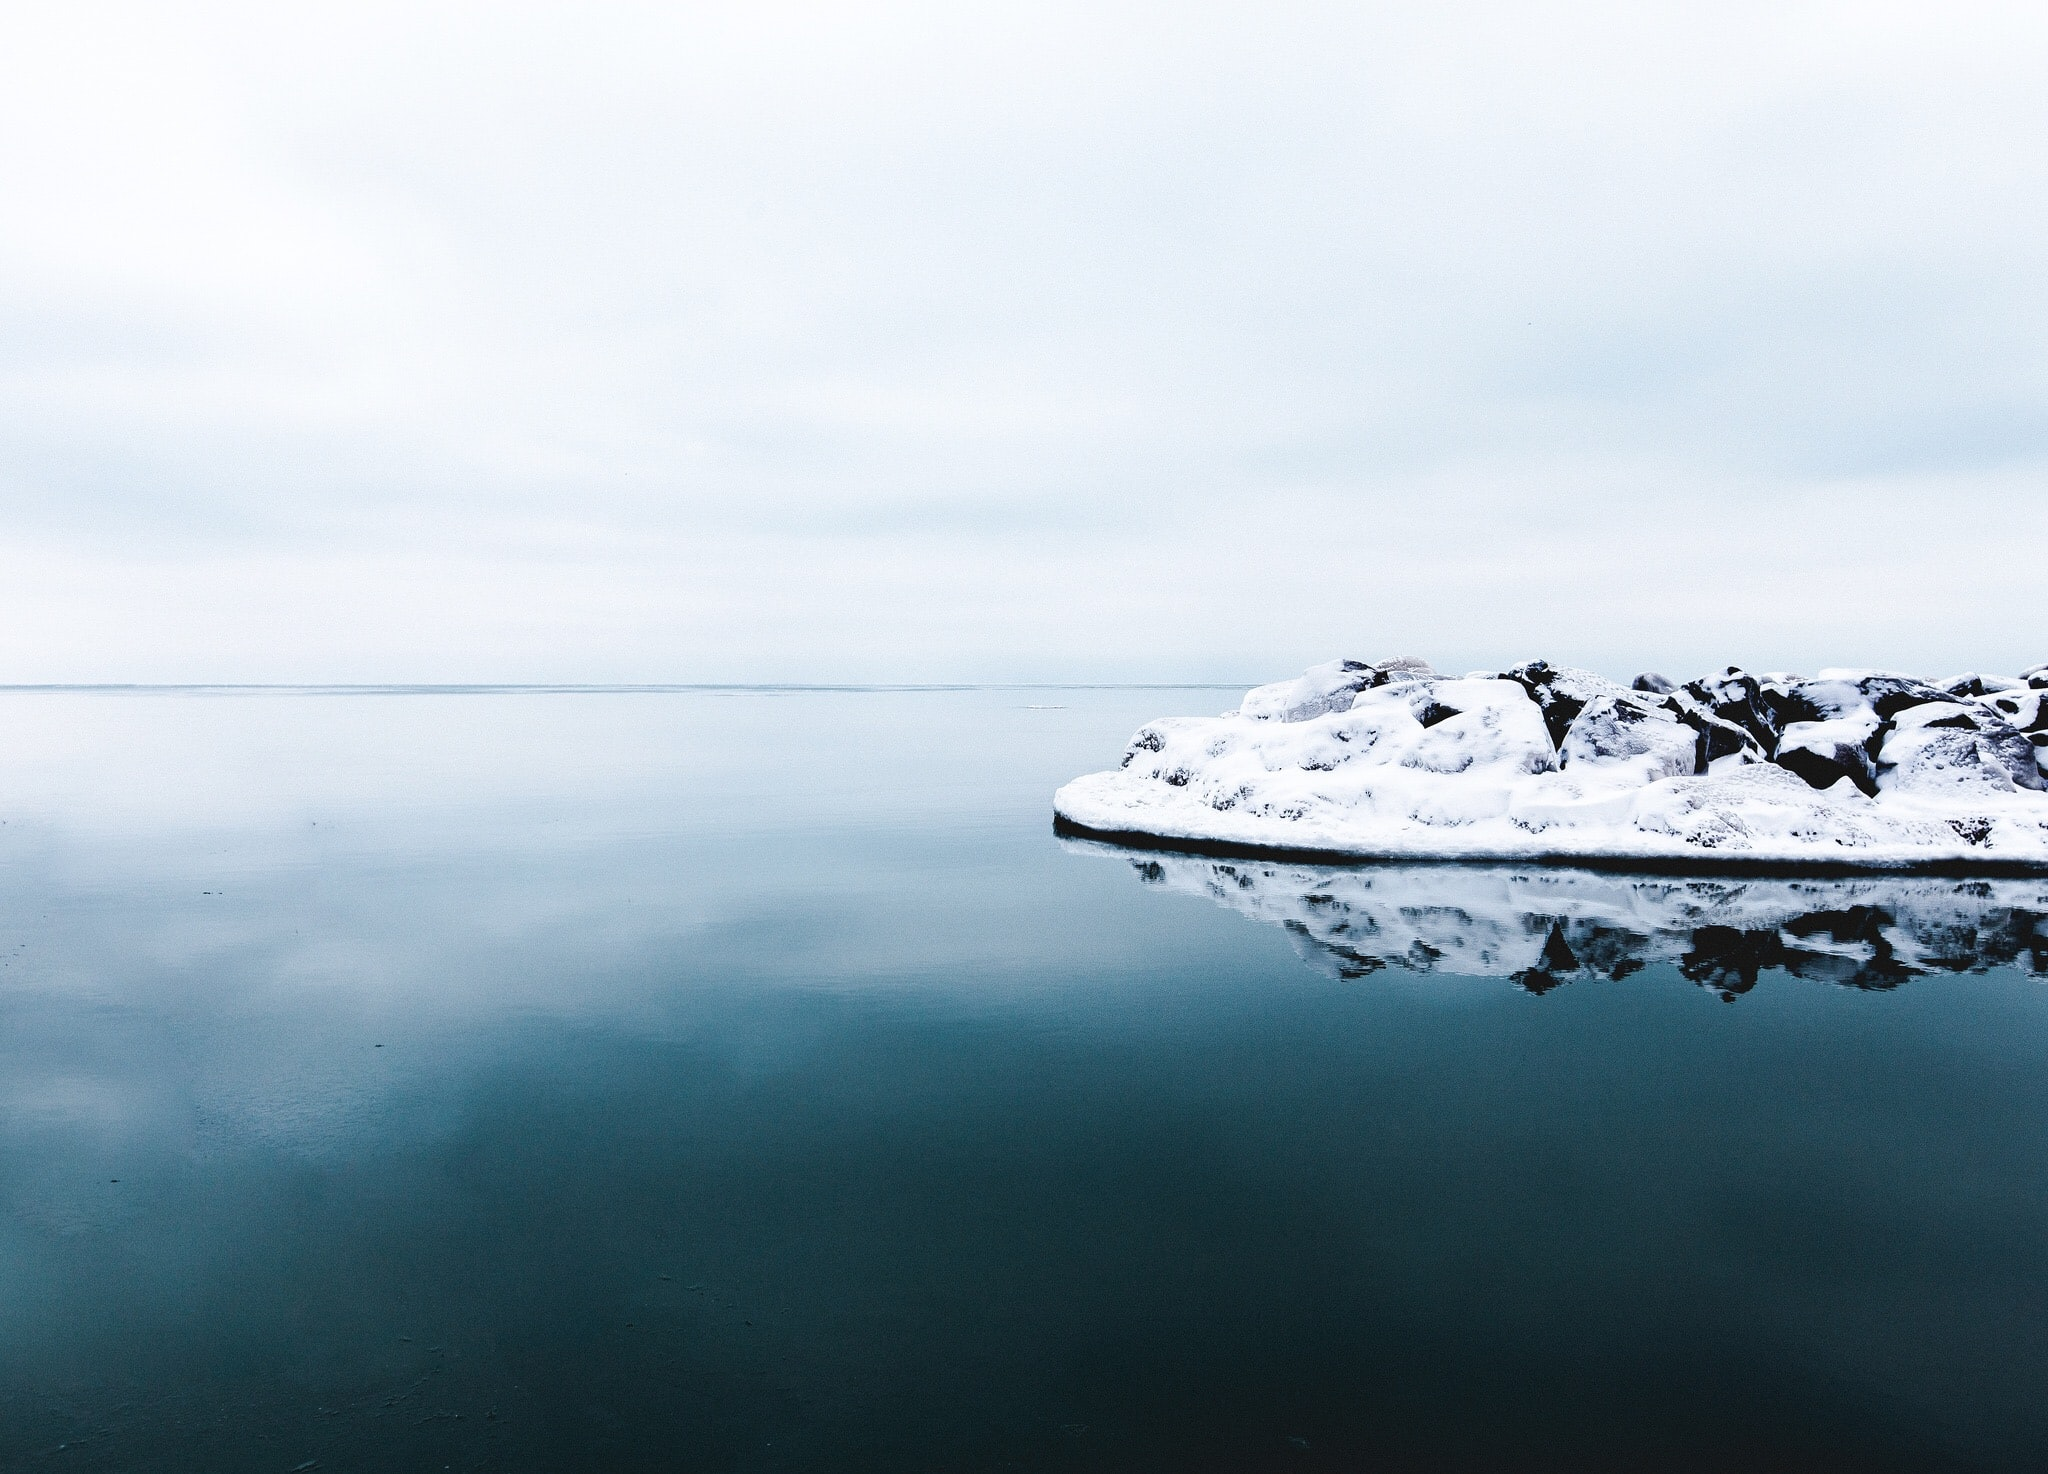 The reflection of a snow covered rock in dark blue water